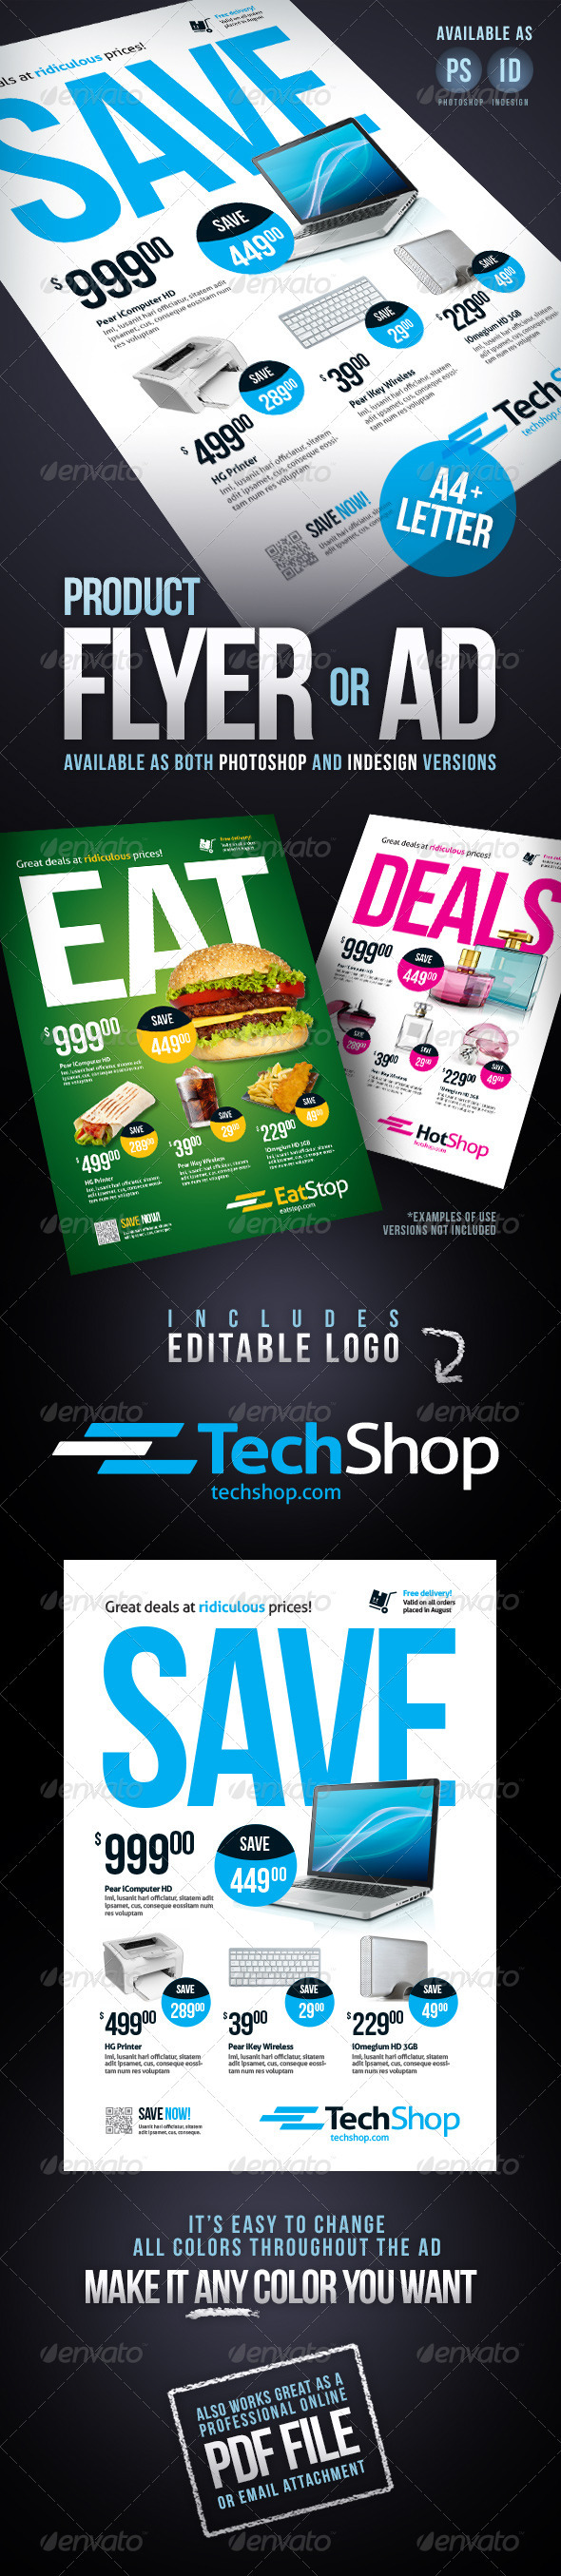 Product flyer Ad